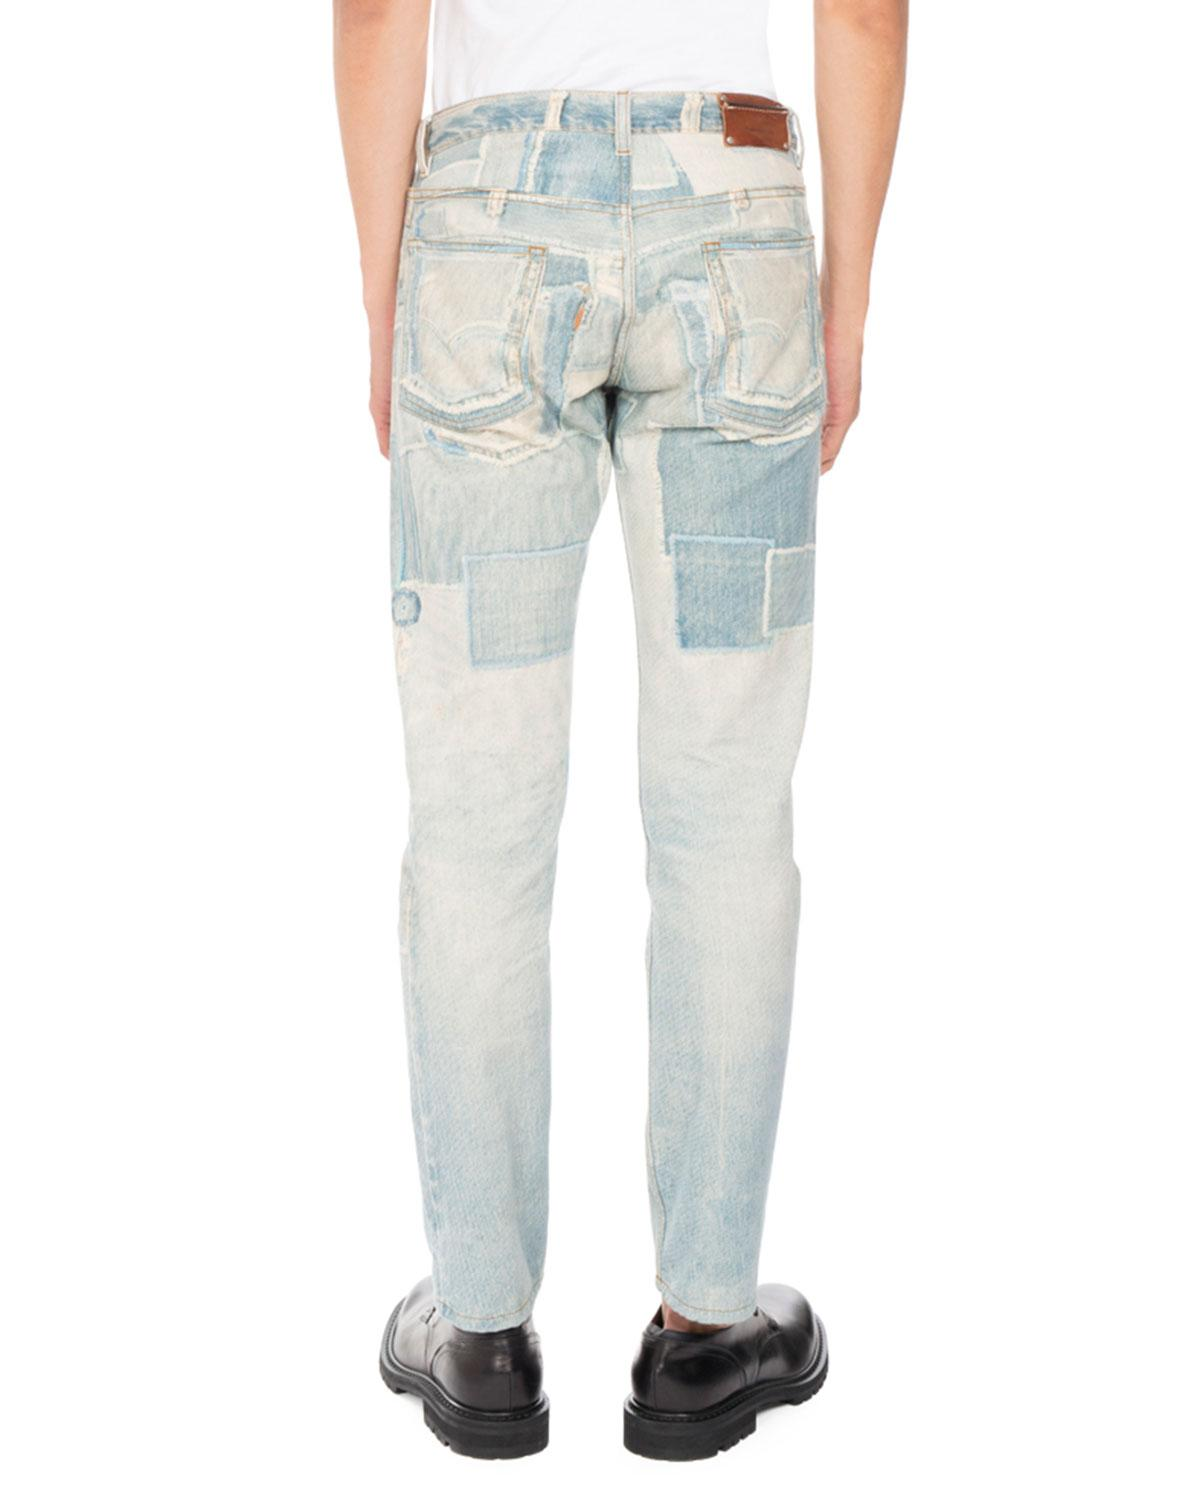 Dries van noten Pender Denim-print Skinny Jeans in Blue for Men | Lyst